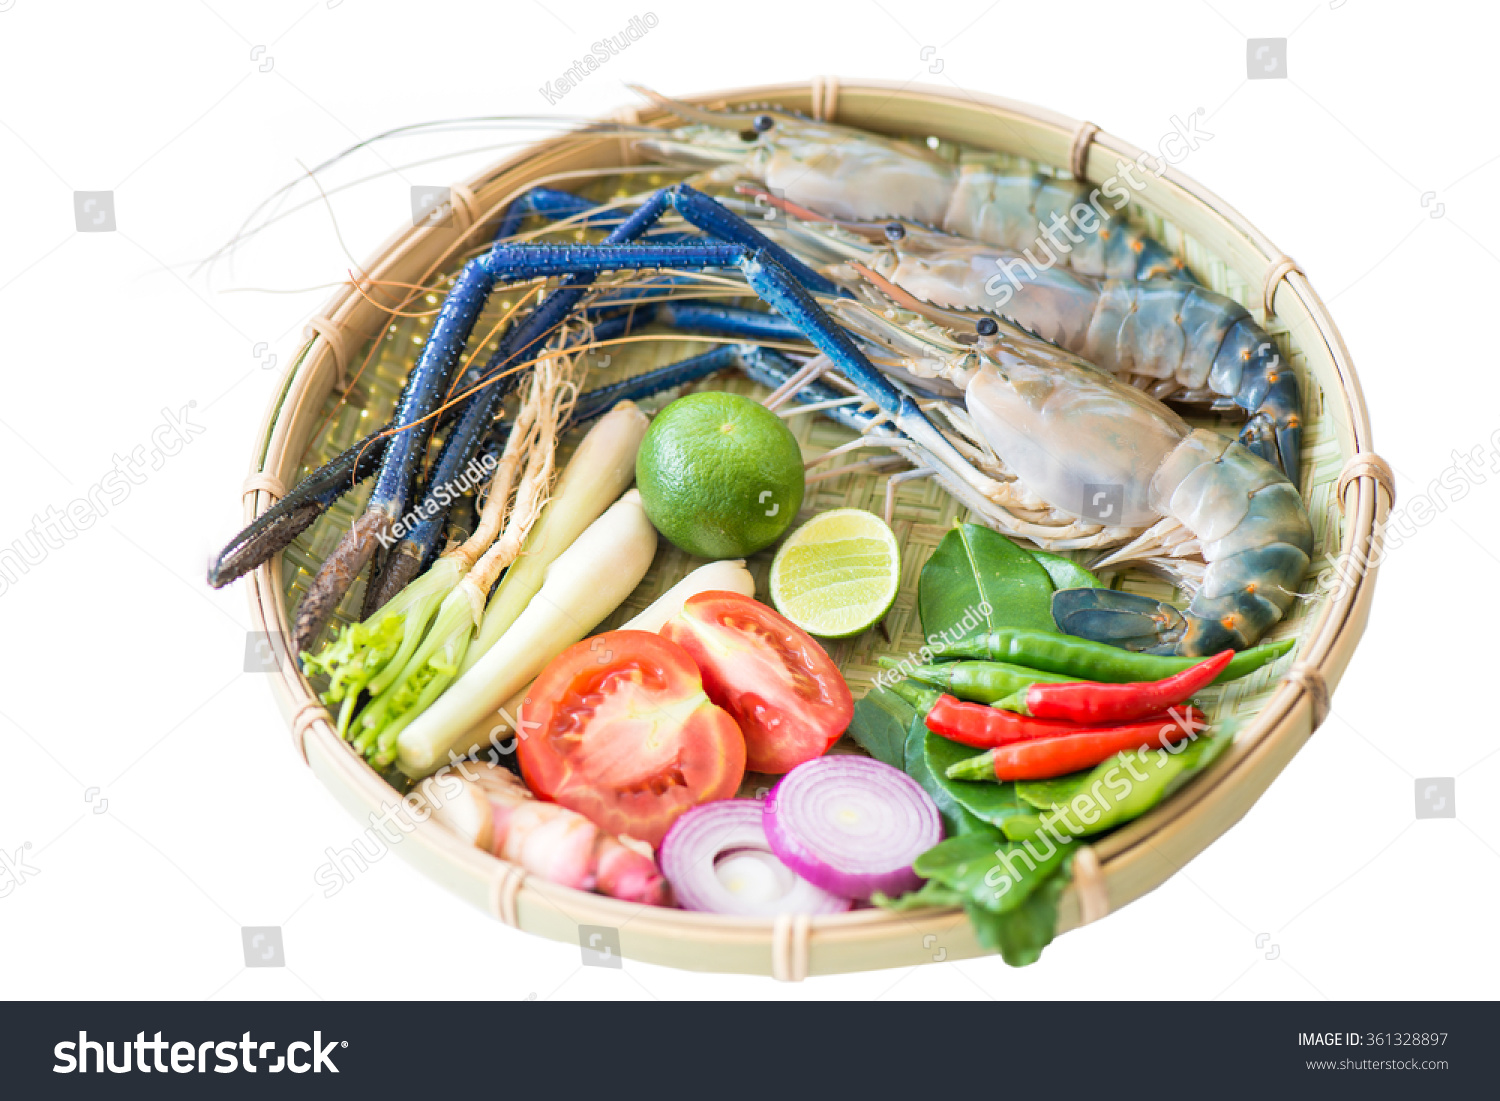 Giant Freshwater Prawn And Ingredient For Tom Yum Goong ...